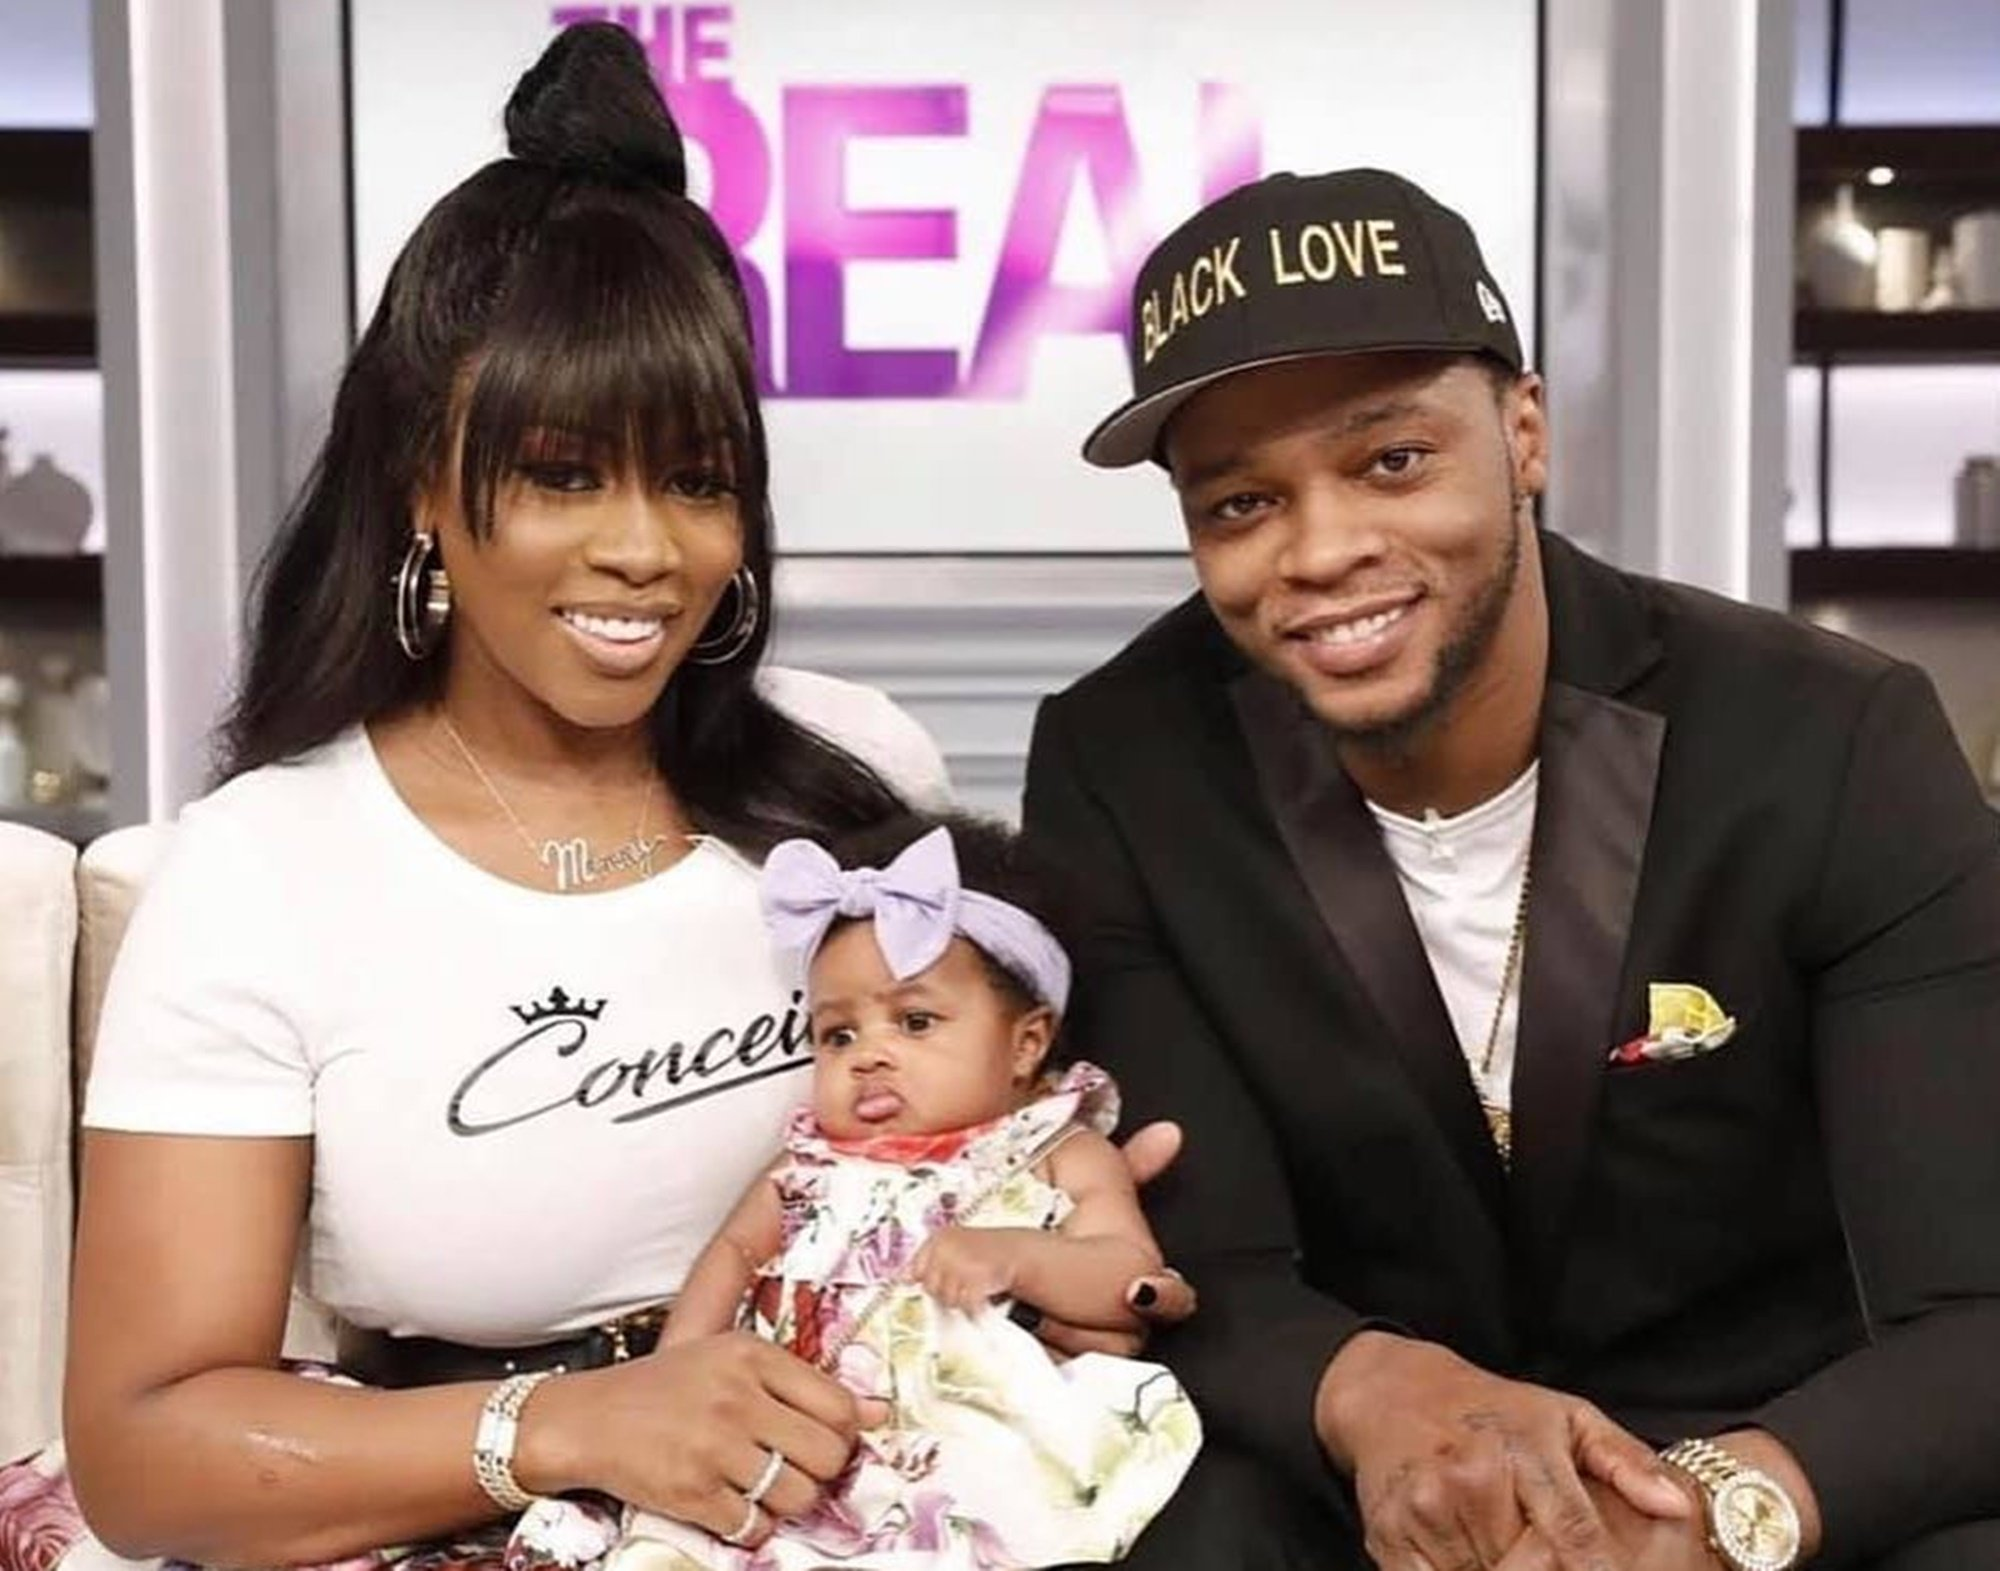 papoose-and-remy-ma-dress-up-as-zombies-and-fans-are-freaking-out-when-they-see-their-baby-girl-see-the-halloween-pics-and-clip-here